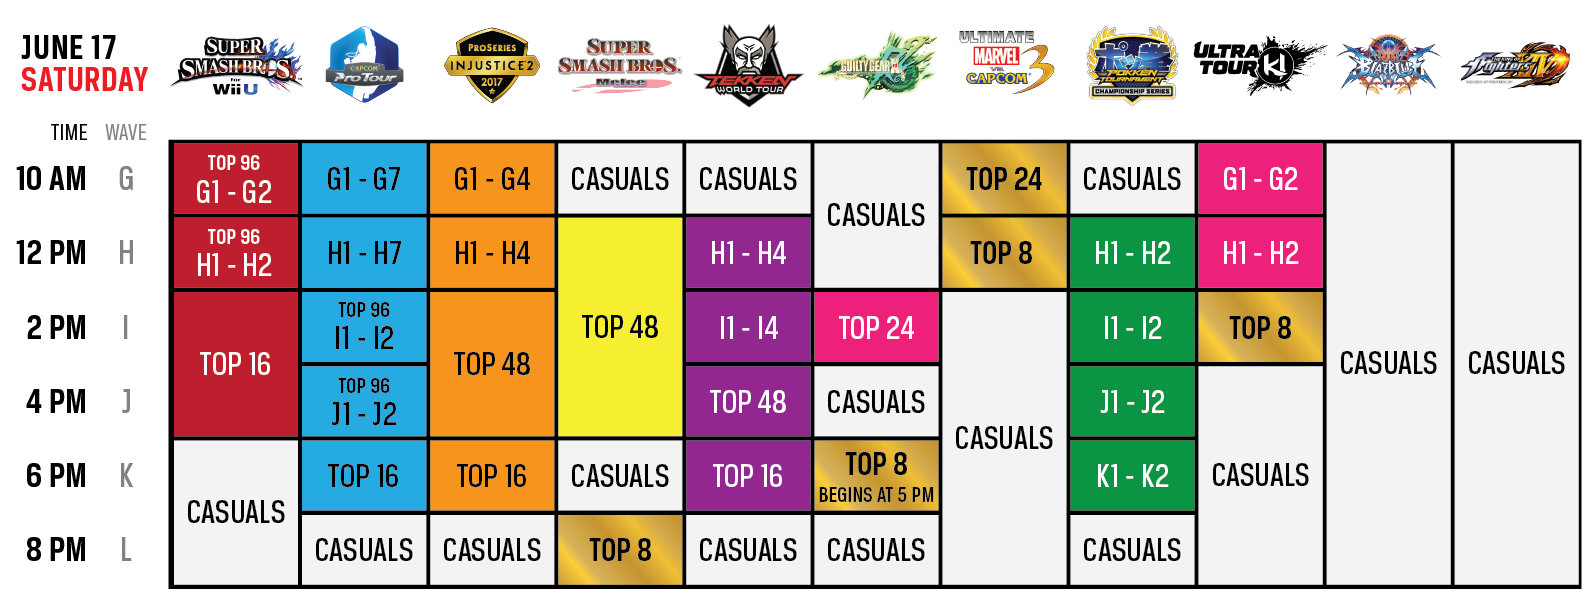 CEO 2017 schedule 2 out of 3 image gallery